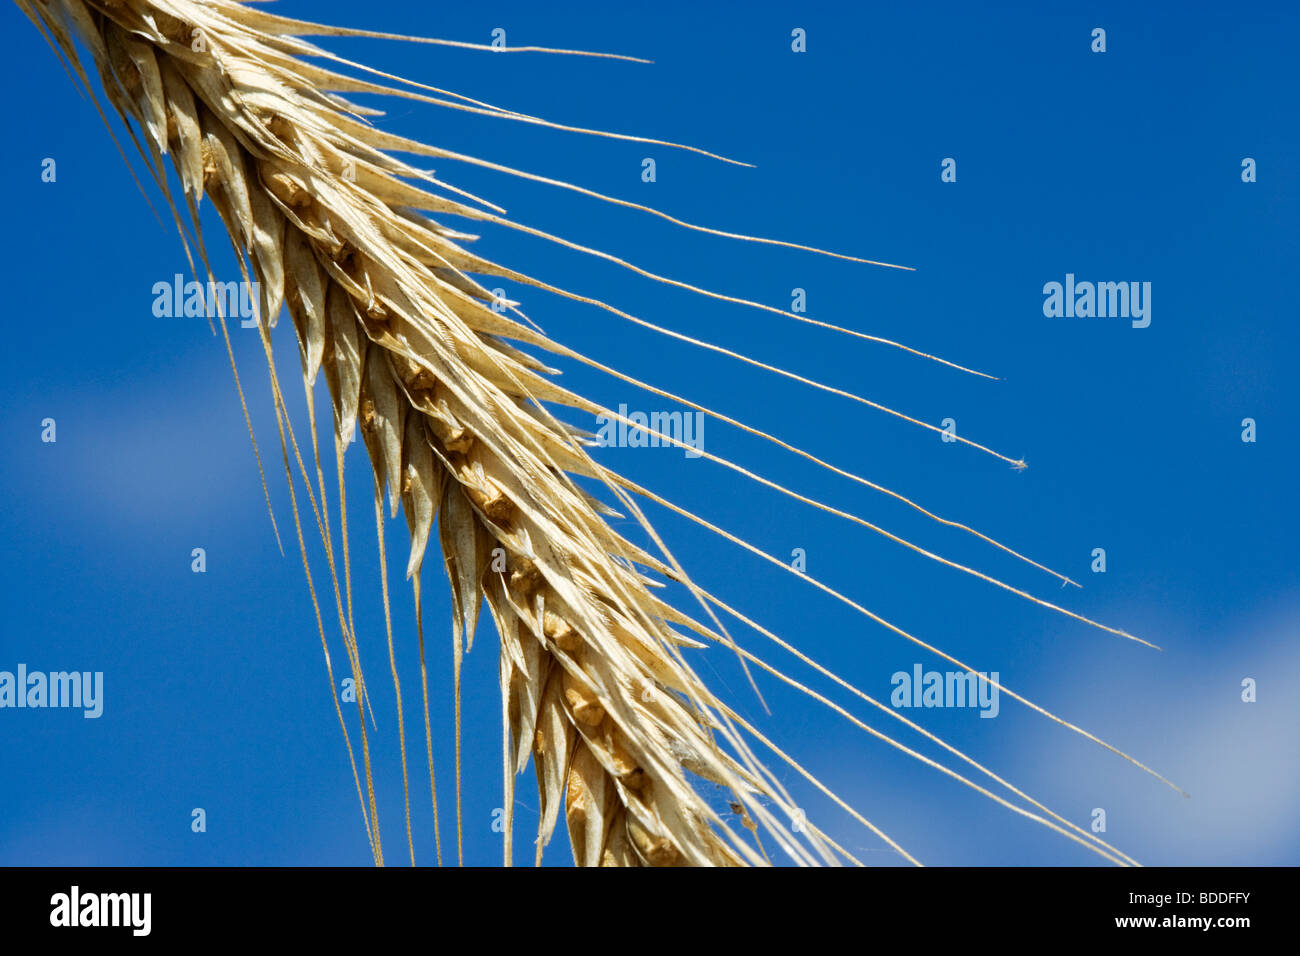 Close-up of Rye. - Stock Image